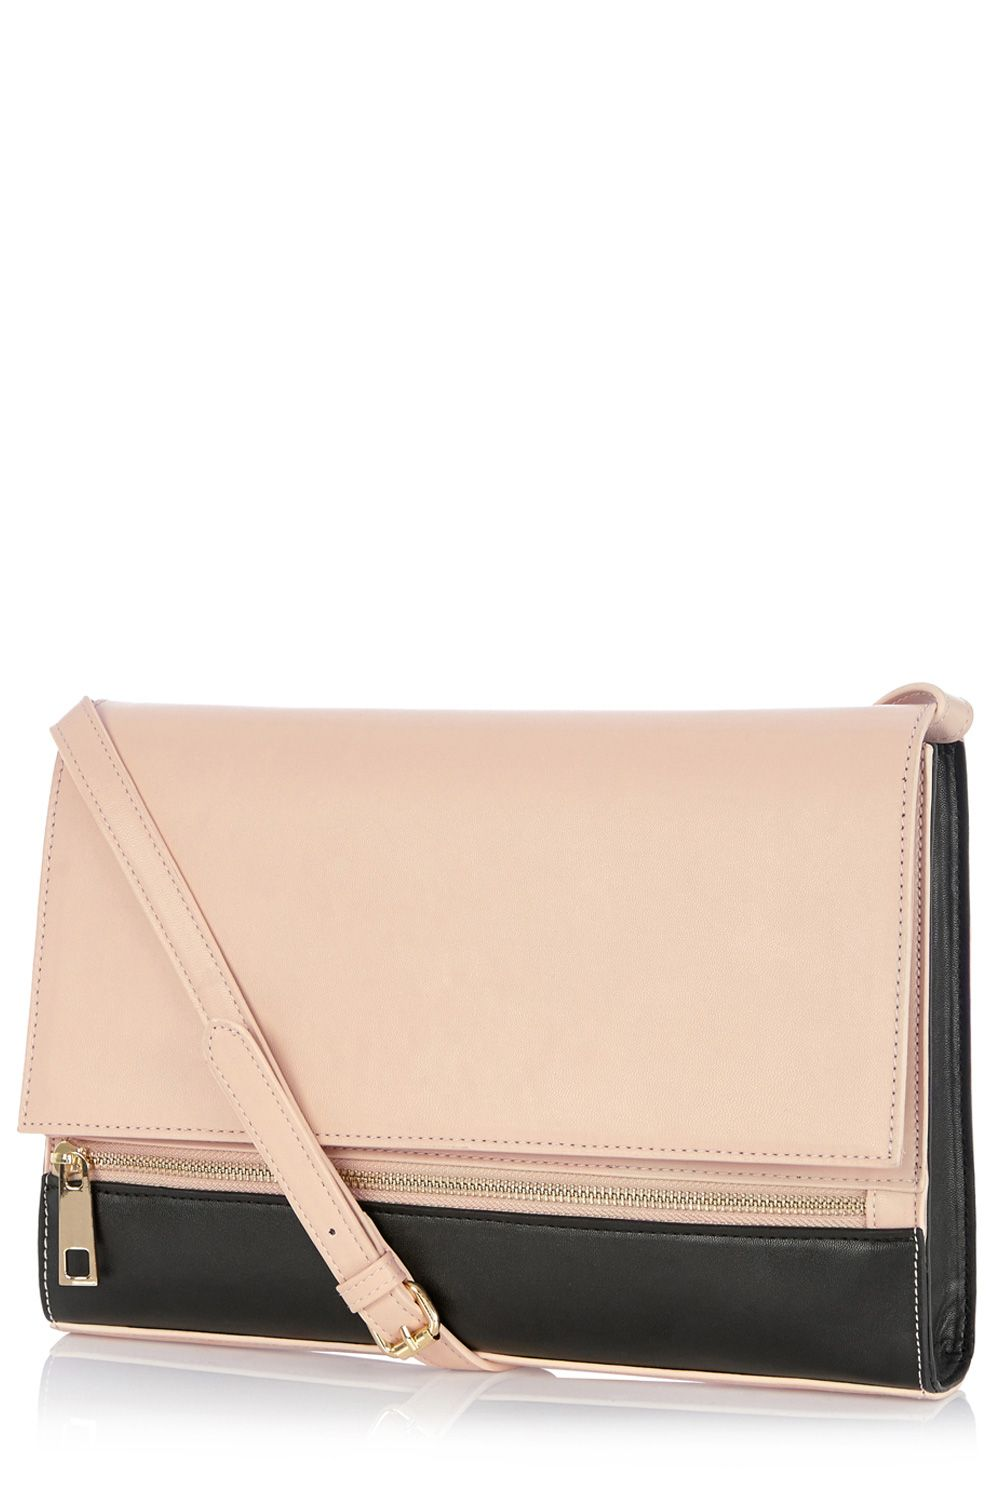 Front Zip Cross Body Clutch Bag